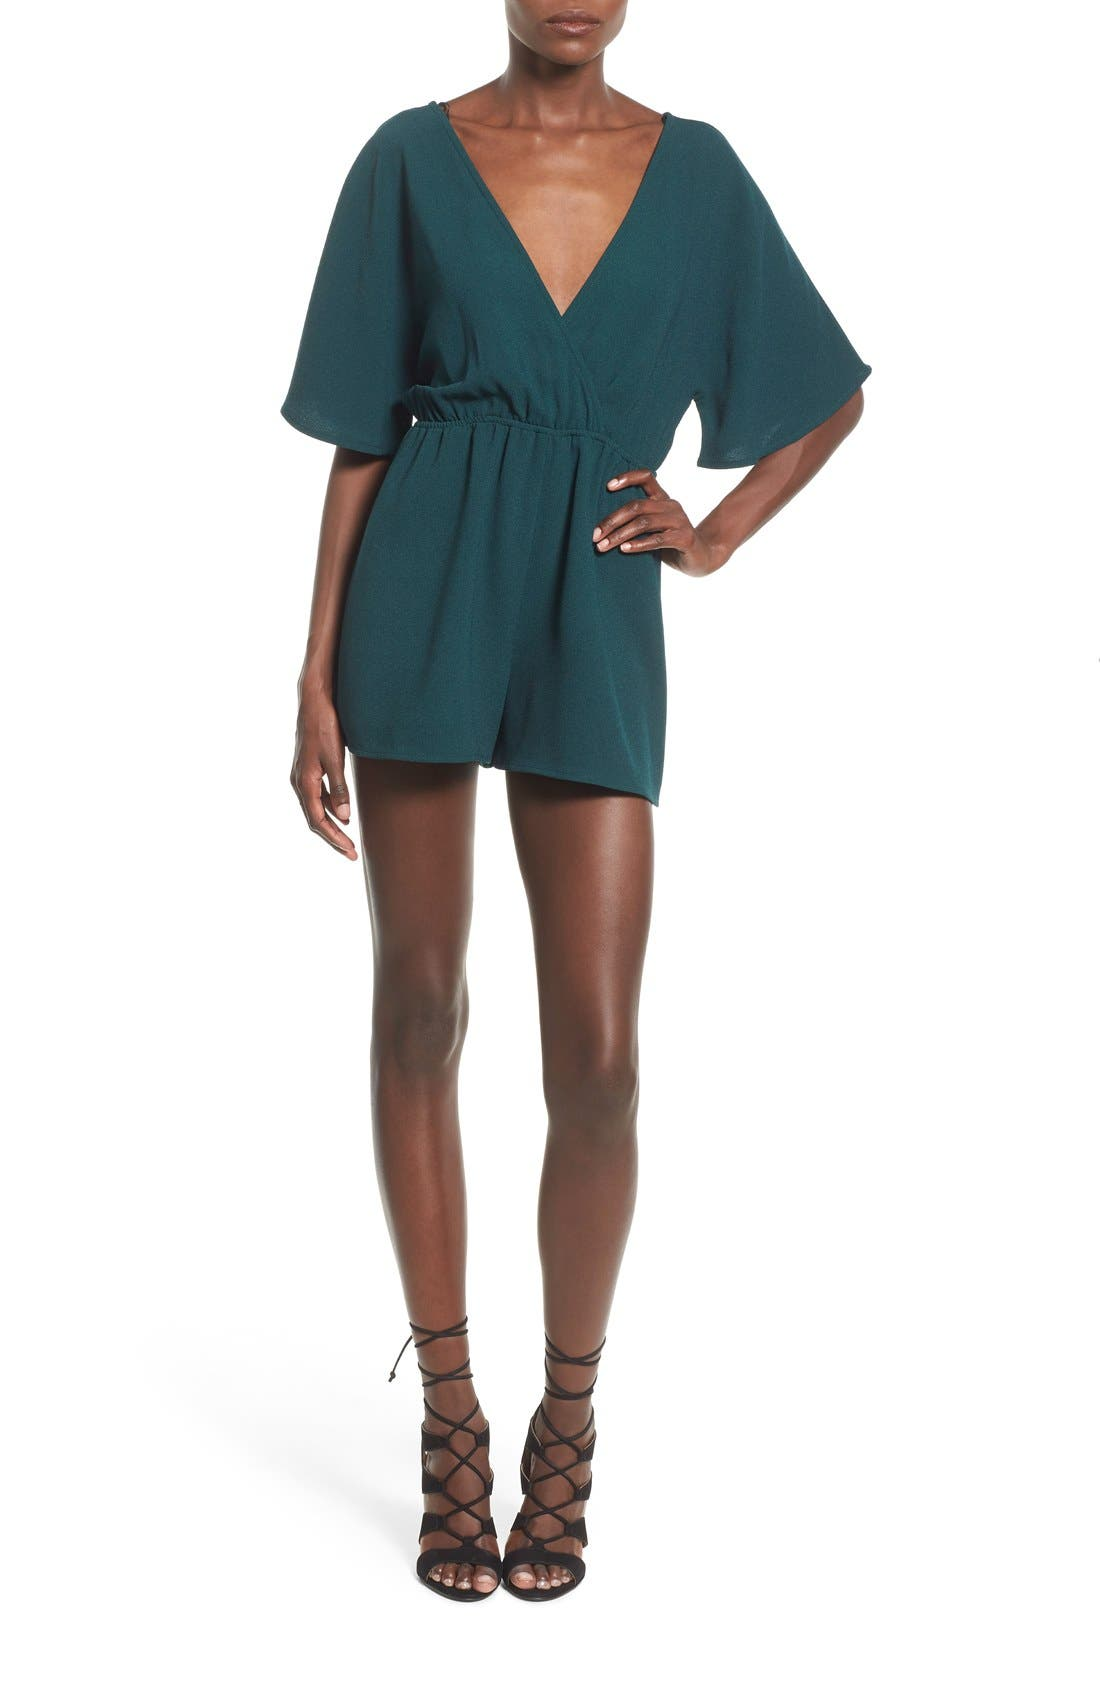 Alternate Image 1 Selected - Leith Tie Back Romper